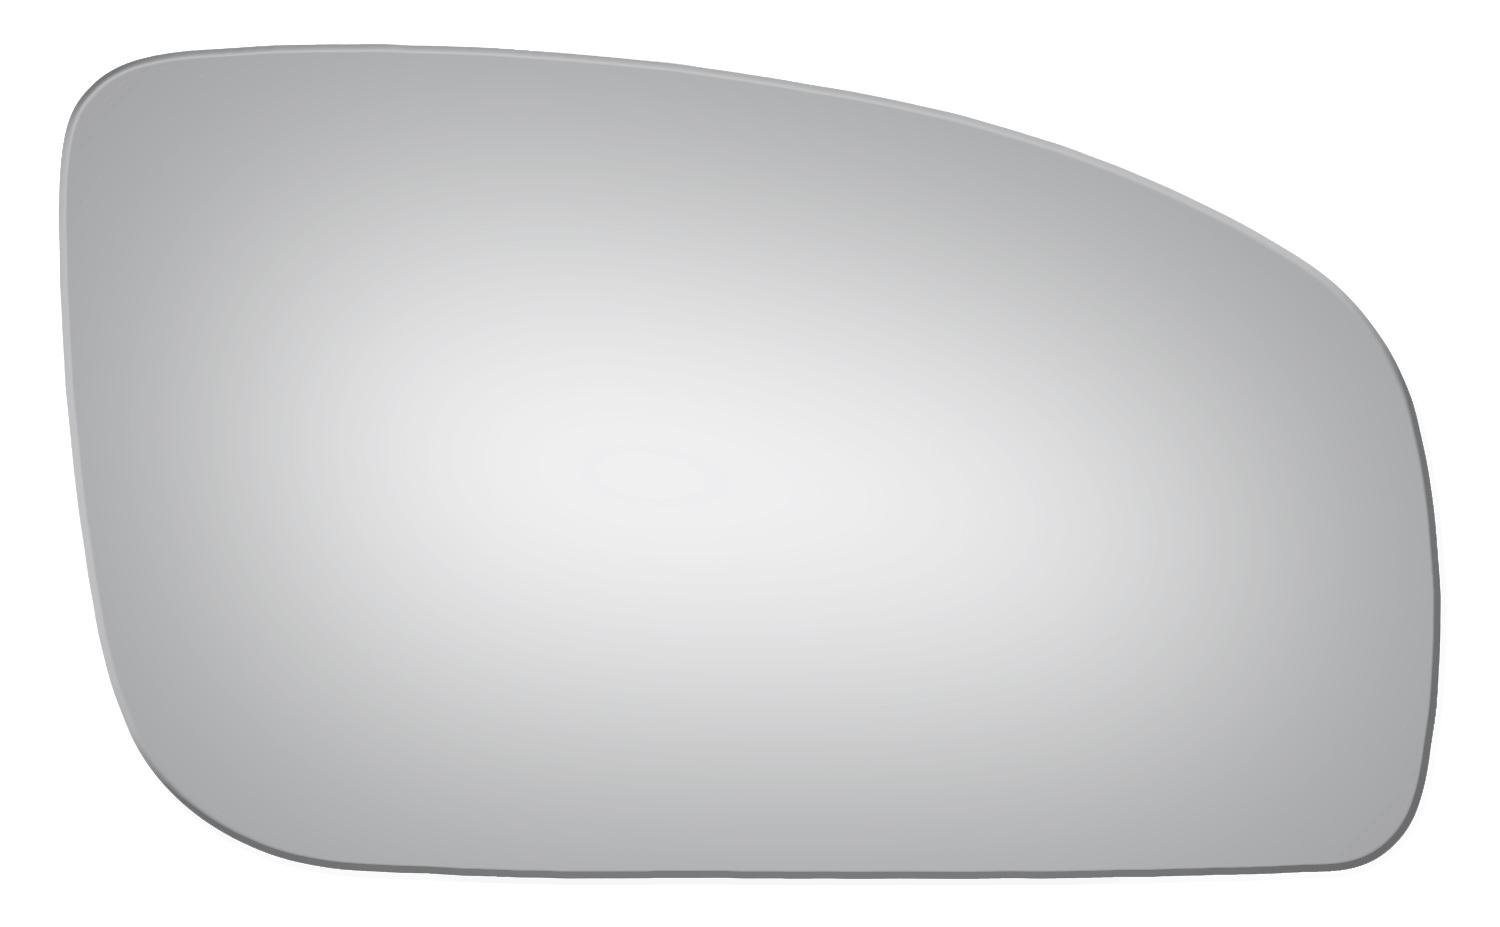 Convex Passenger Side Mirror Replacement Glass for 2006-2010 INFINITI M45